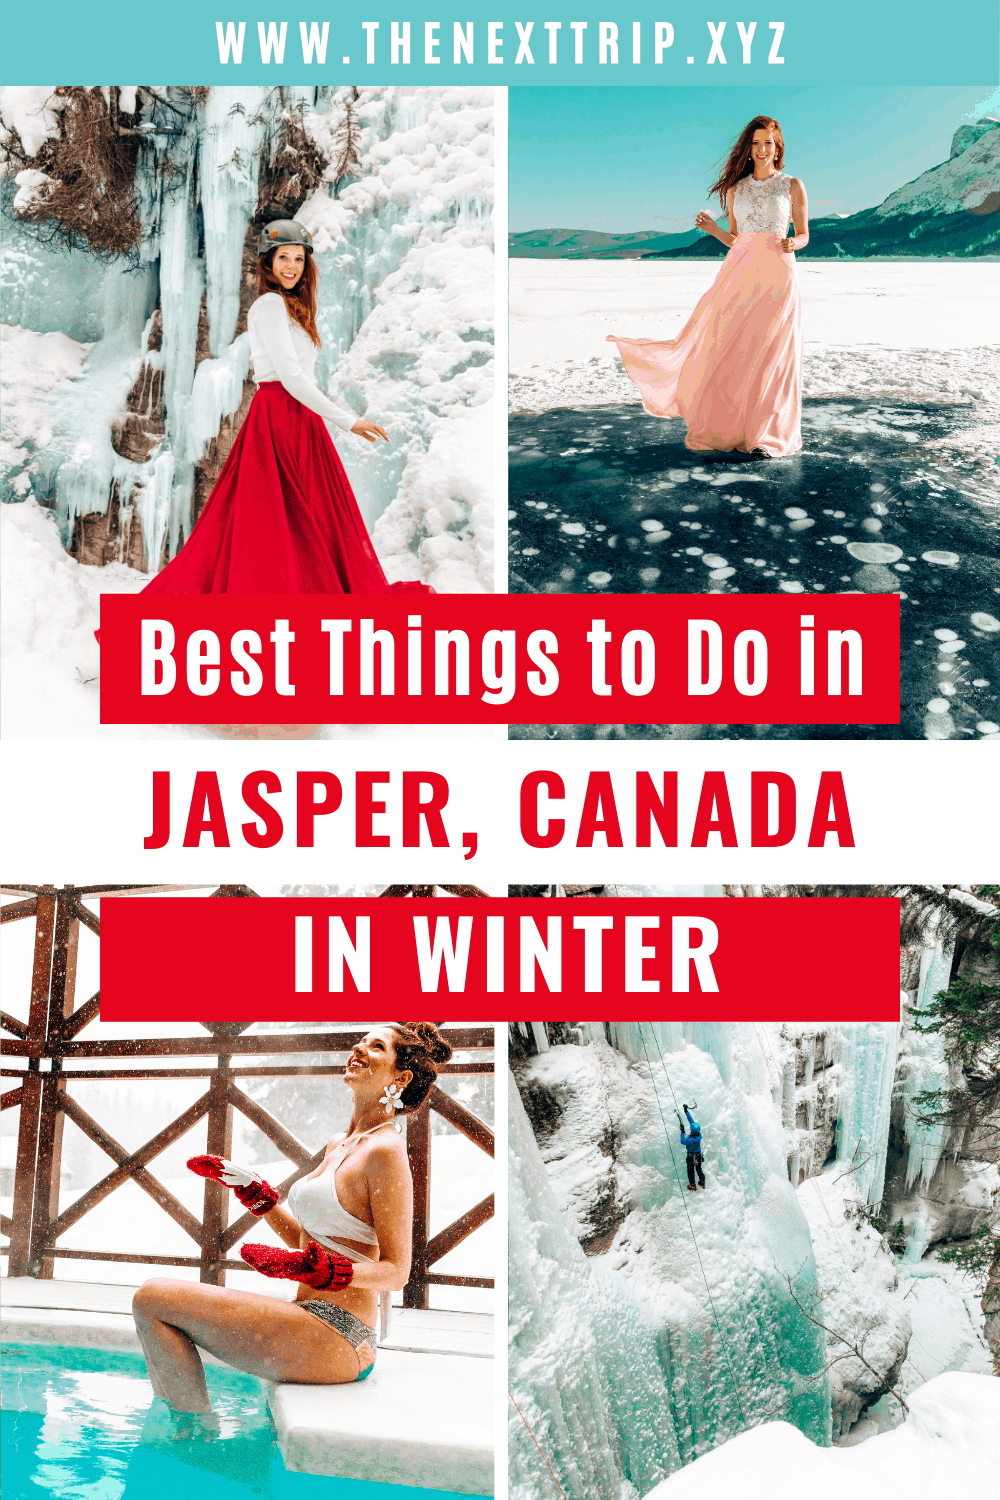 """The best things to do in Jasper in winter and your ultimate guide to Jasper National Park! Here is everything you need to know to plan your perfect winter getaway to Jasper, Canada. Explore the frozen lake bubbles at Abraham Lake, go on the Maligne Canyon Icewalk, drive the Icefields Parkway, and warm up at the hot tub at Pyramid Lake Resort! 